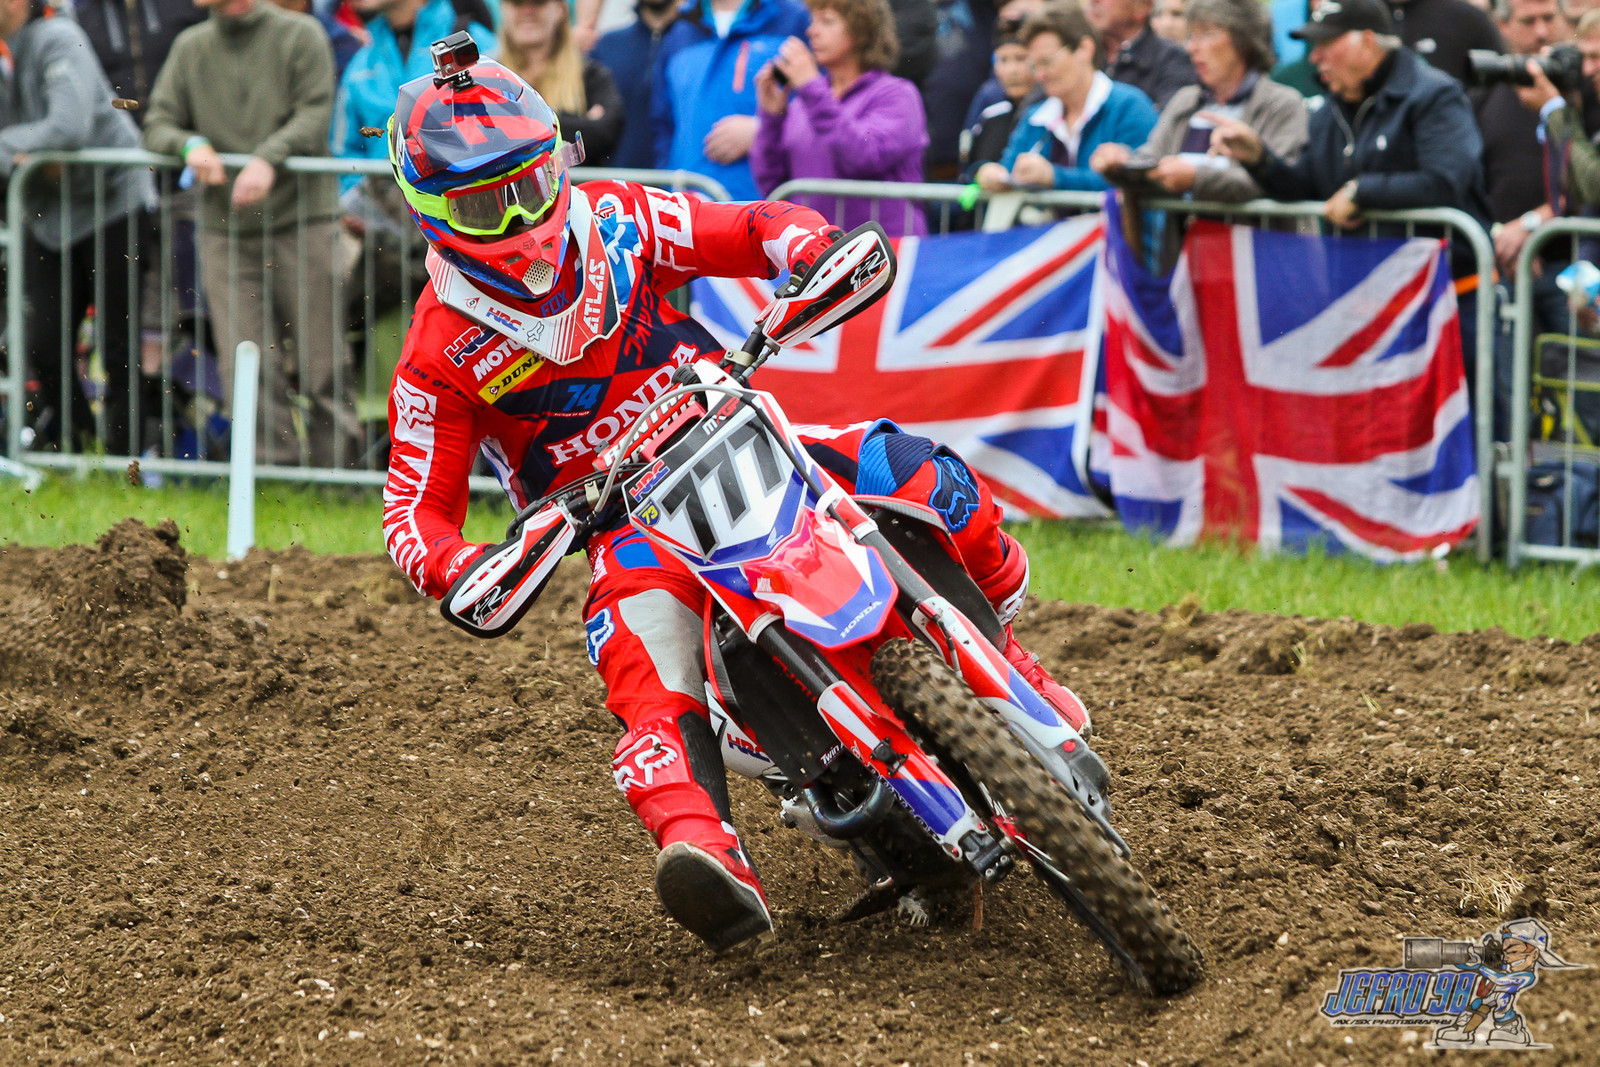 Evgeny Bobryshev - Photo Gallery: MXGP of Great Britain - Motocross Pictures - Vital MX